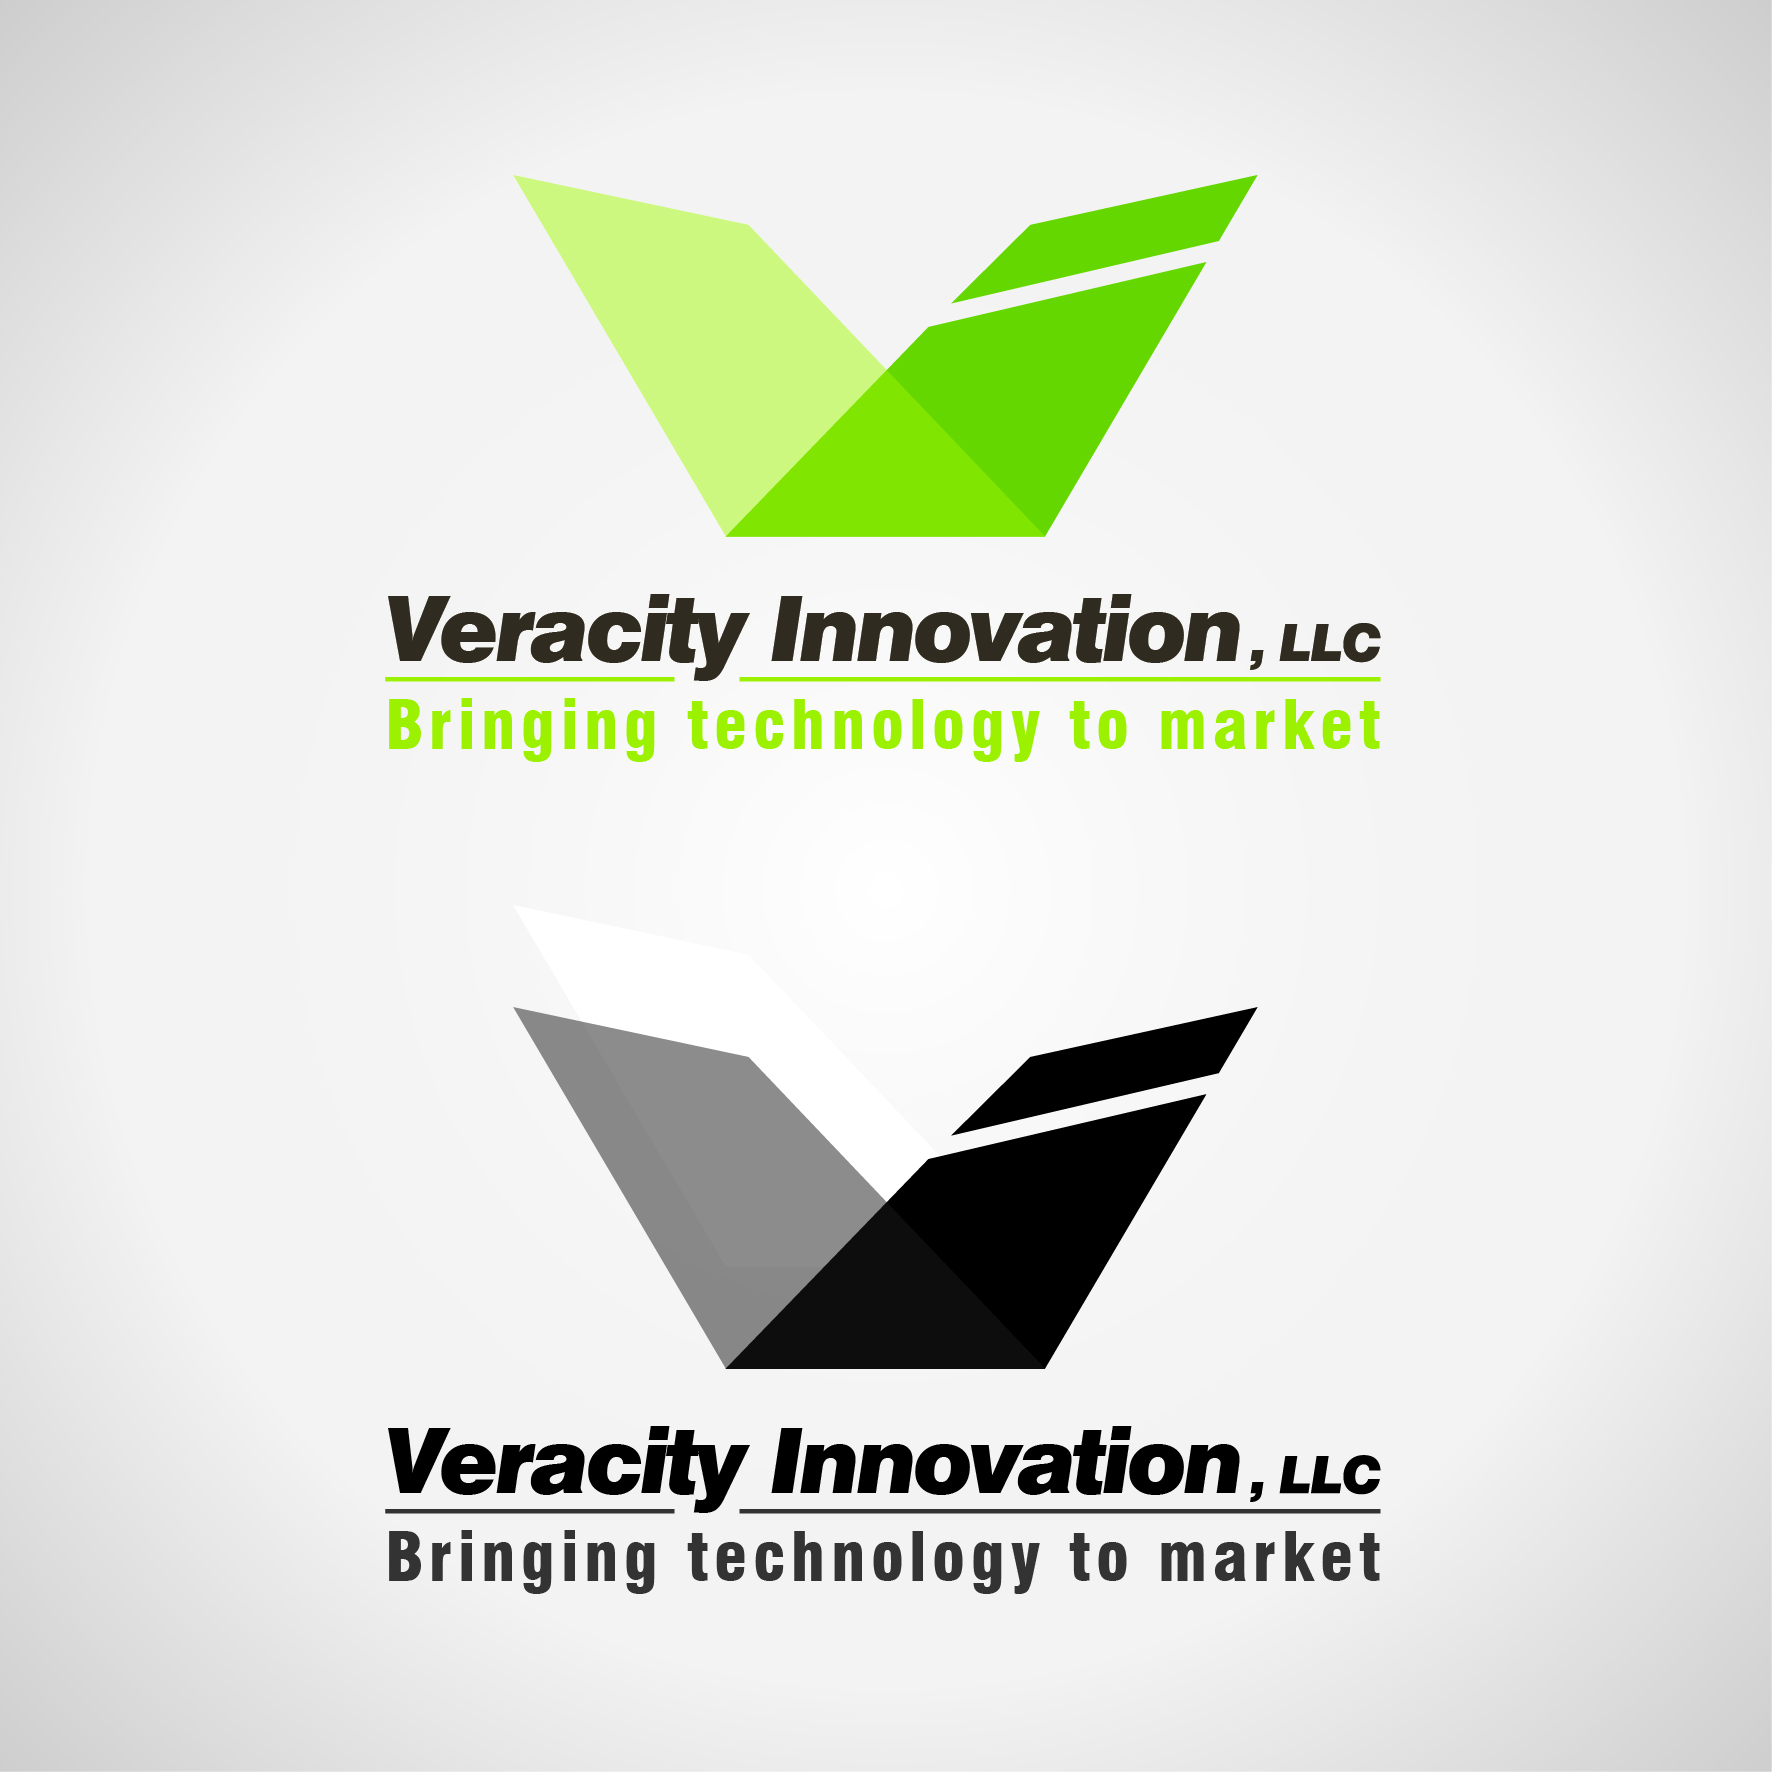 Logo Design by Faris Alsalahat - Entry No. 315 in the Logo Design Contest Creative Logo Design for Veracity Innovation, LLC.